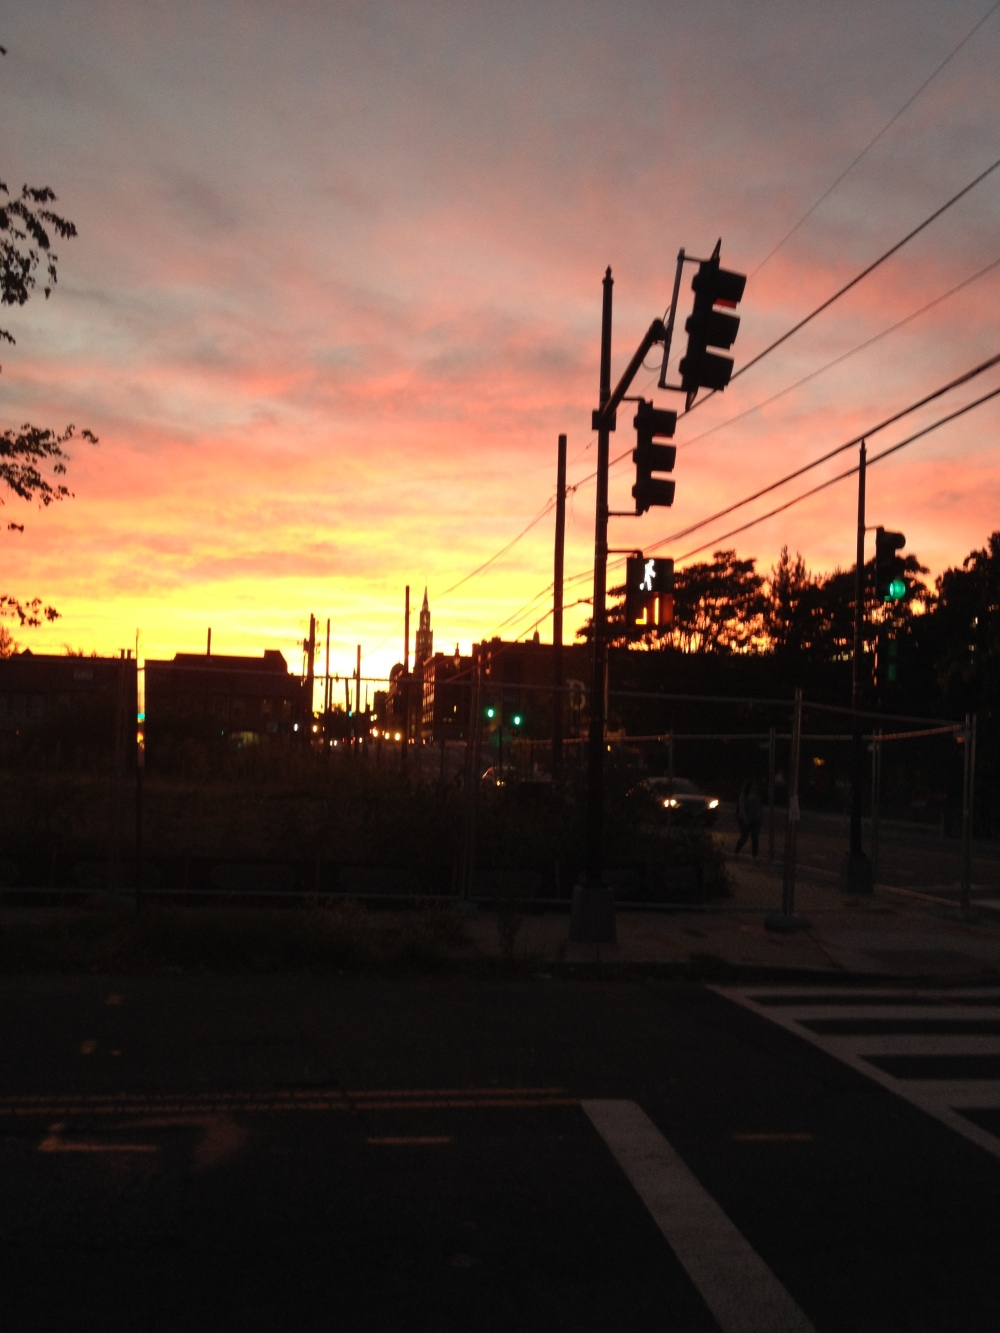 Sunset in Brookland. At the intersection between work and home.